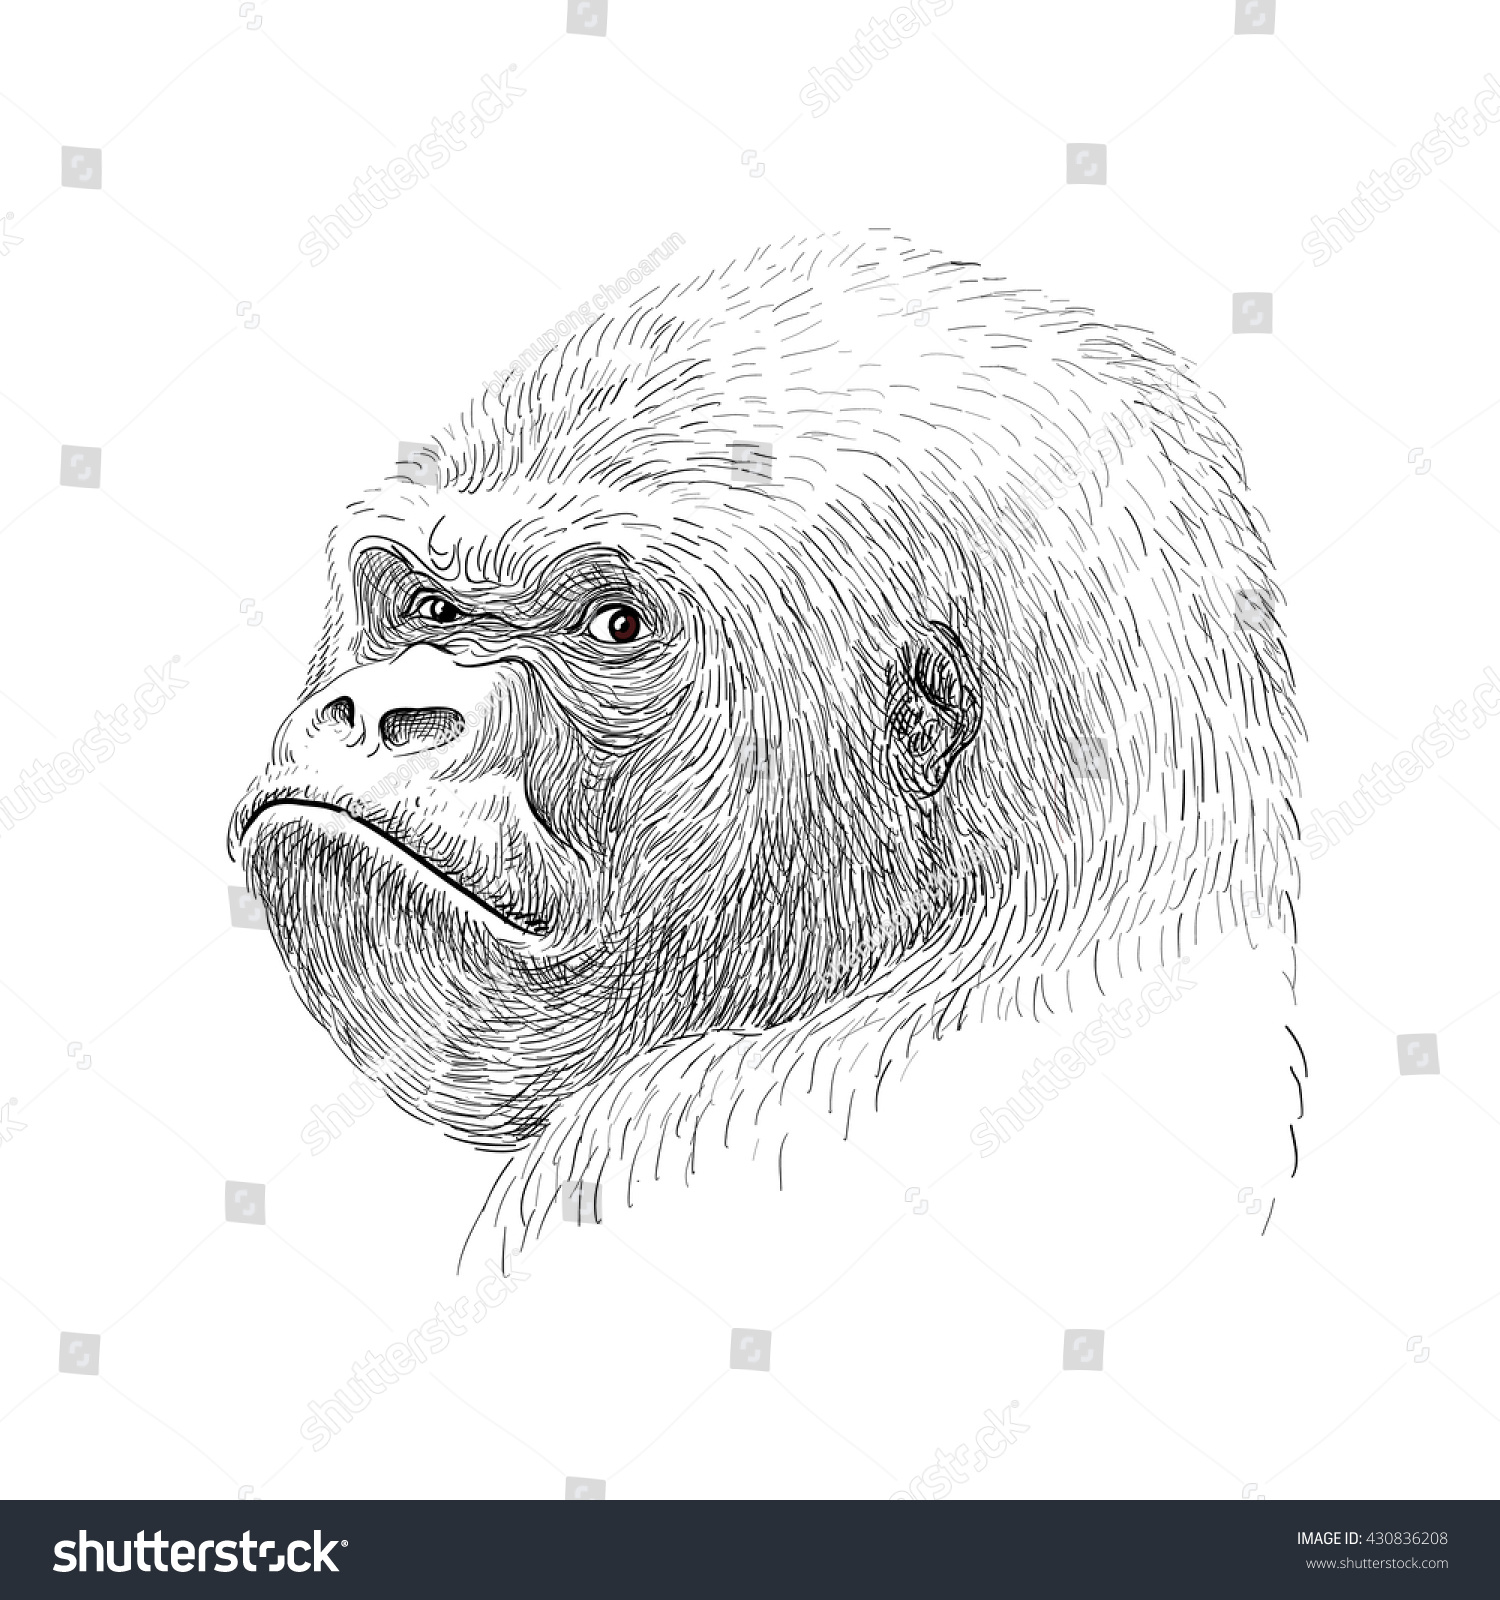 Gorilla face drawing for kids